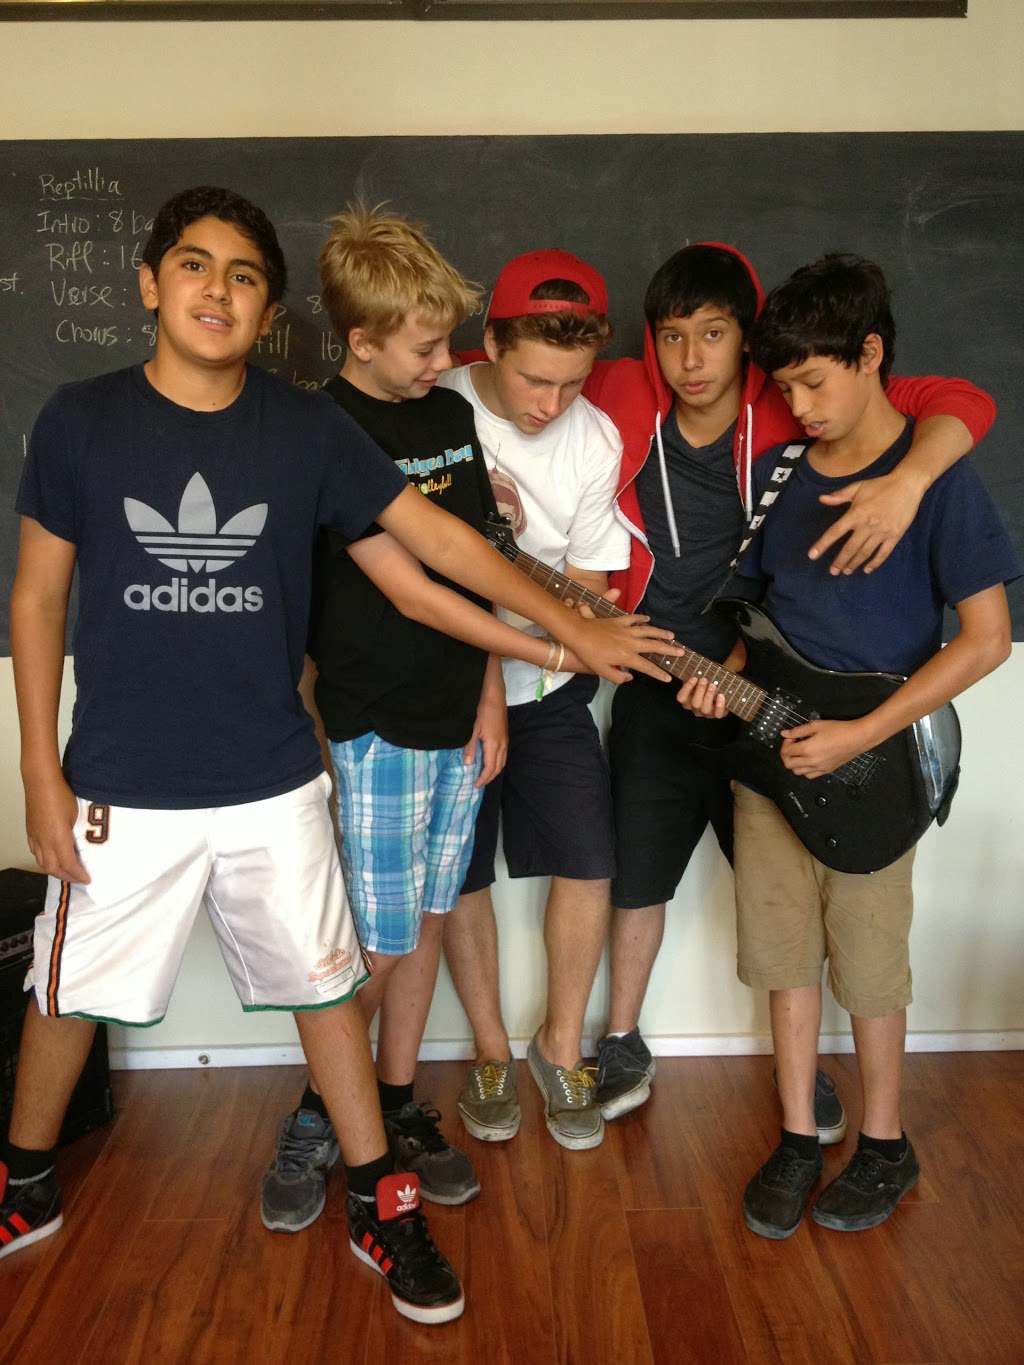 Red House Music Academy | school | 1108 Dundas St W #2, Toronto, ON M6J 1X2, Canada | 4165355500 OR +1 416-535-5500